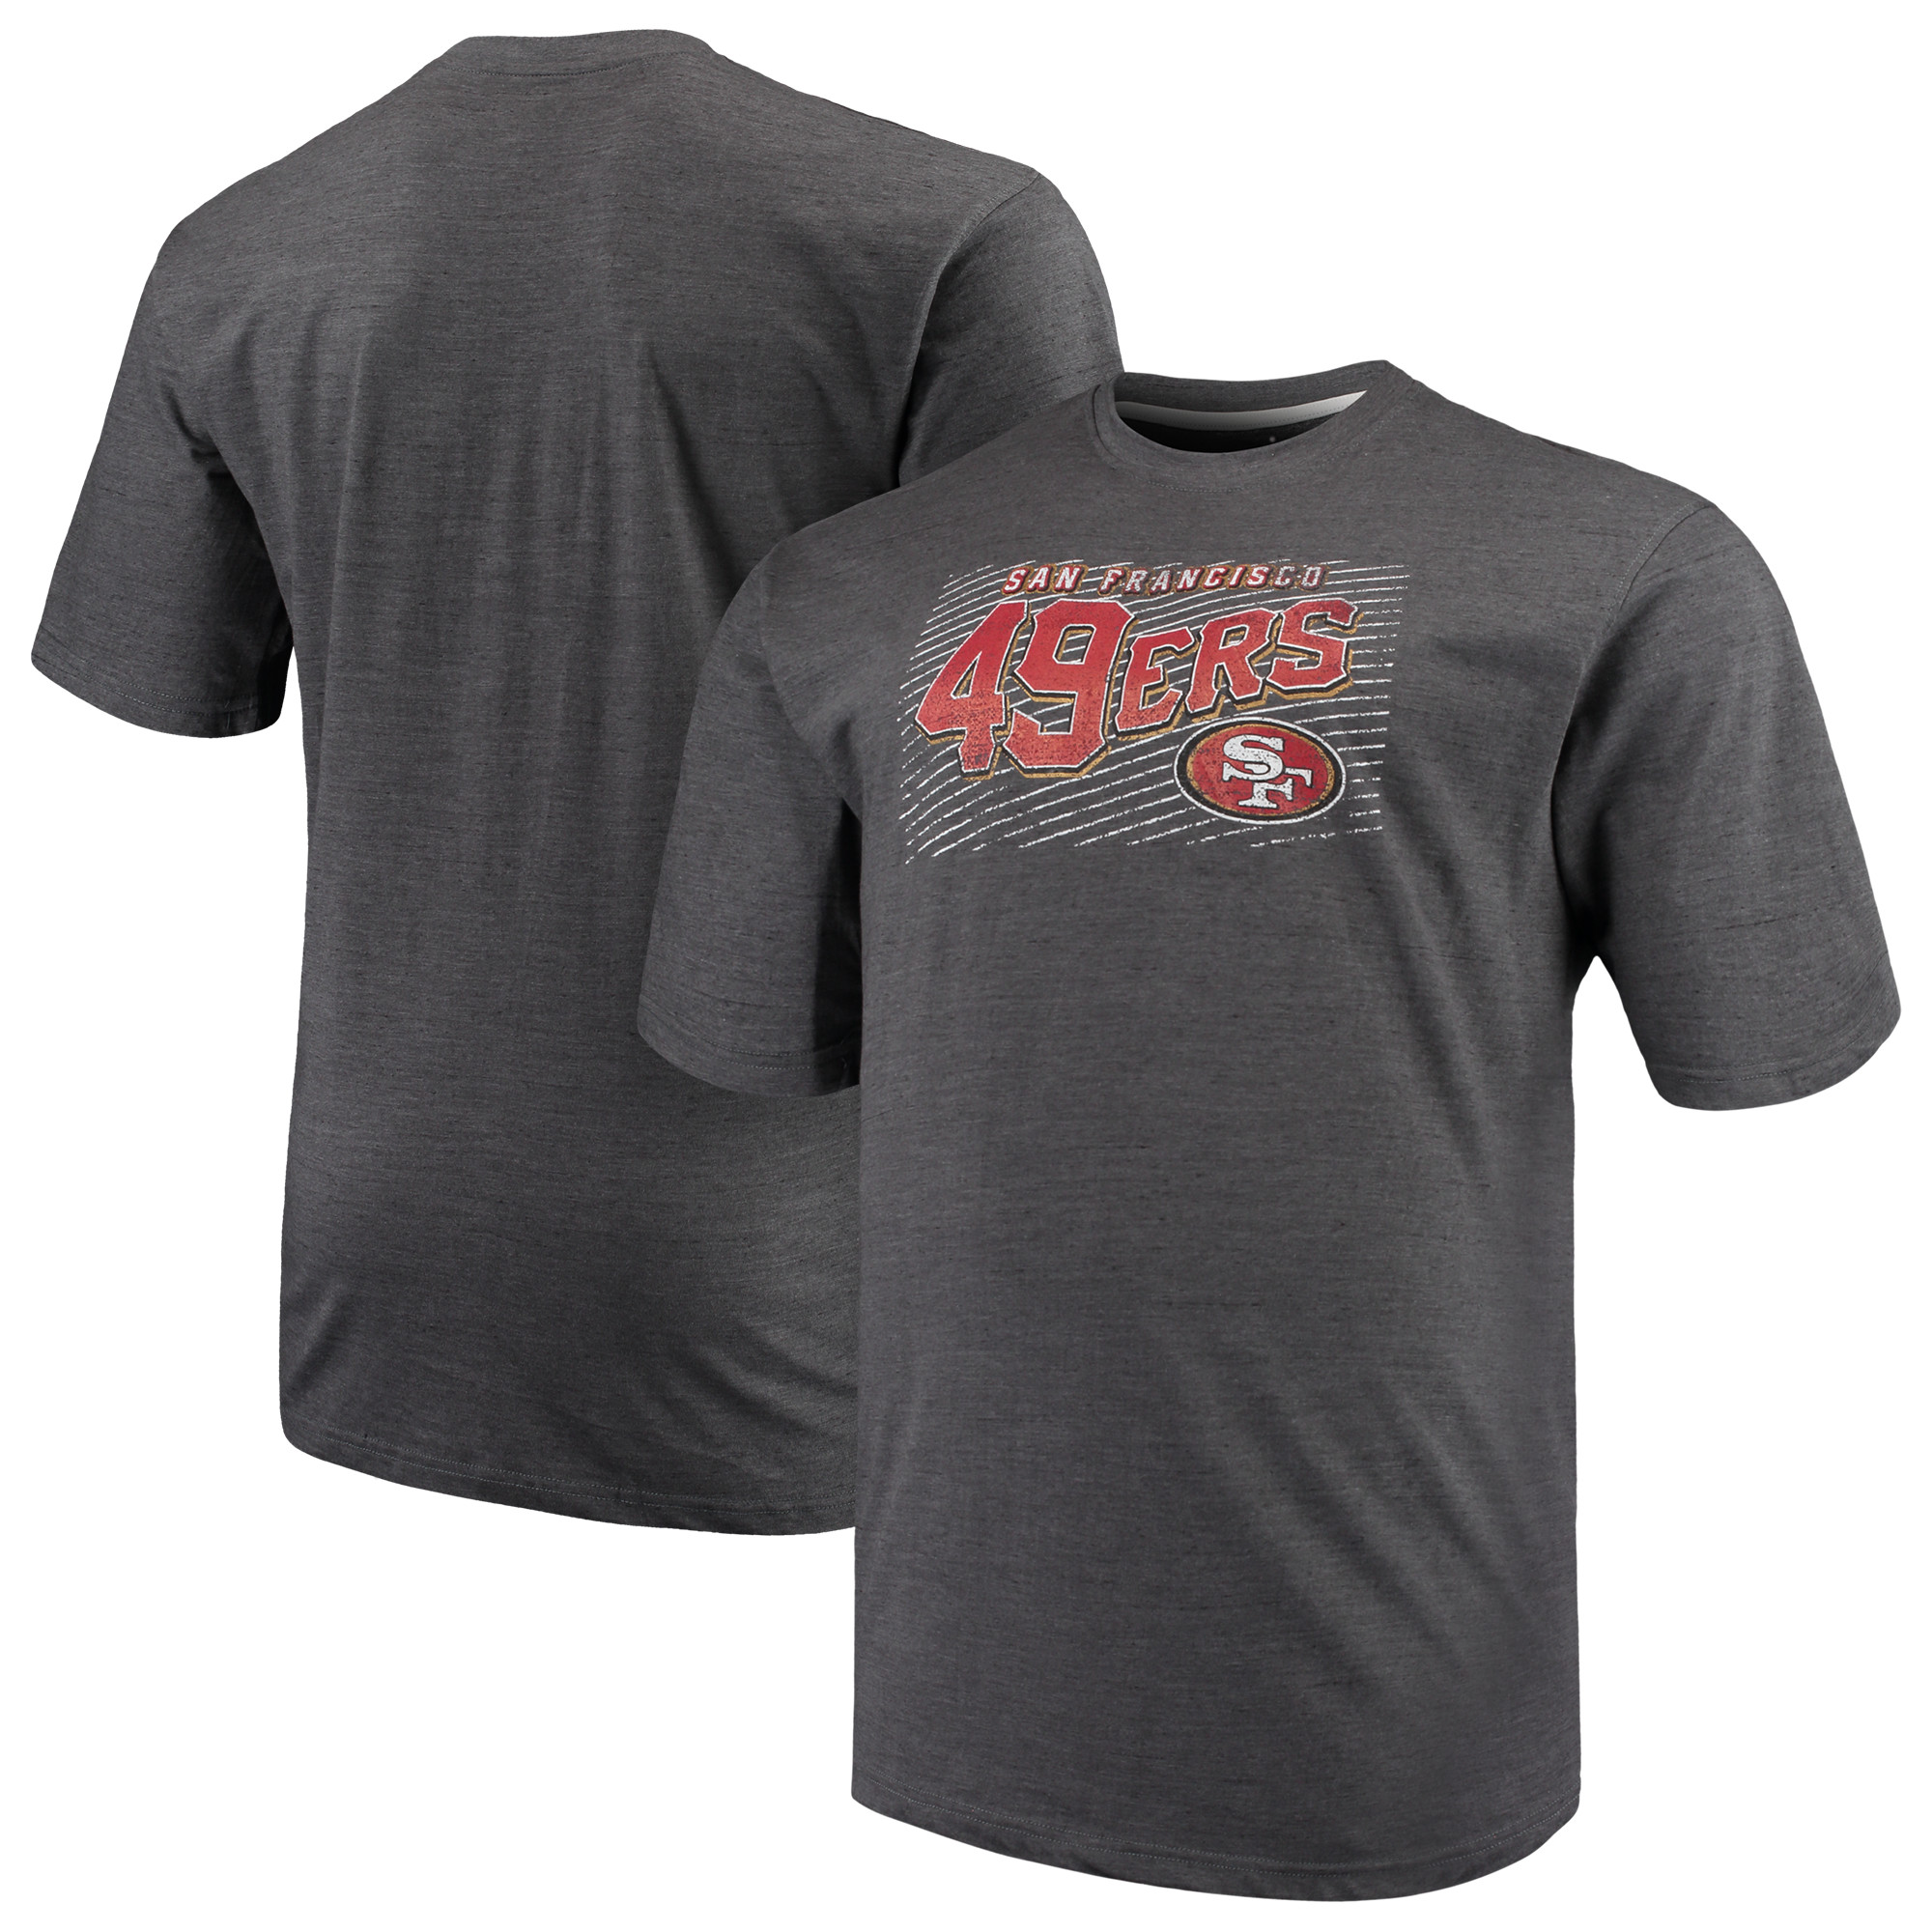 Men's Majestic Charcoal San Francisco 49ers Big & Tall Royal Domination Malt T-Shirt